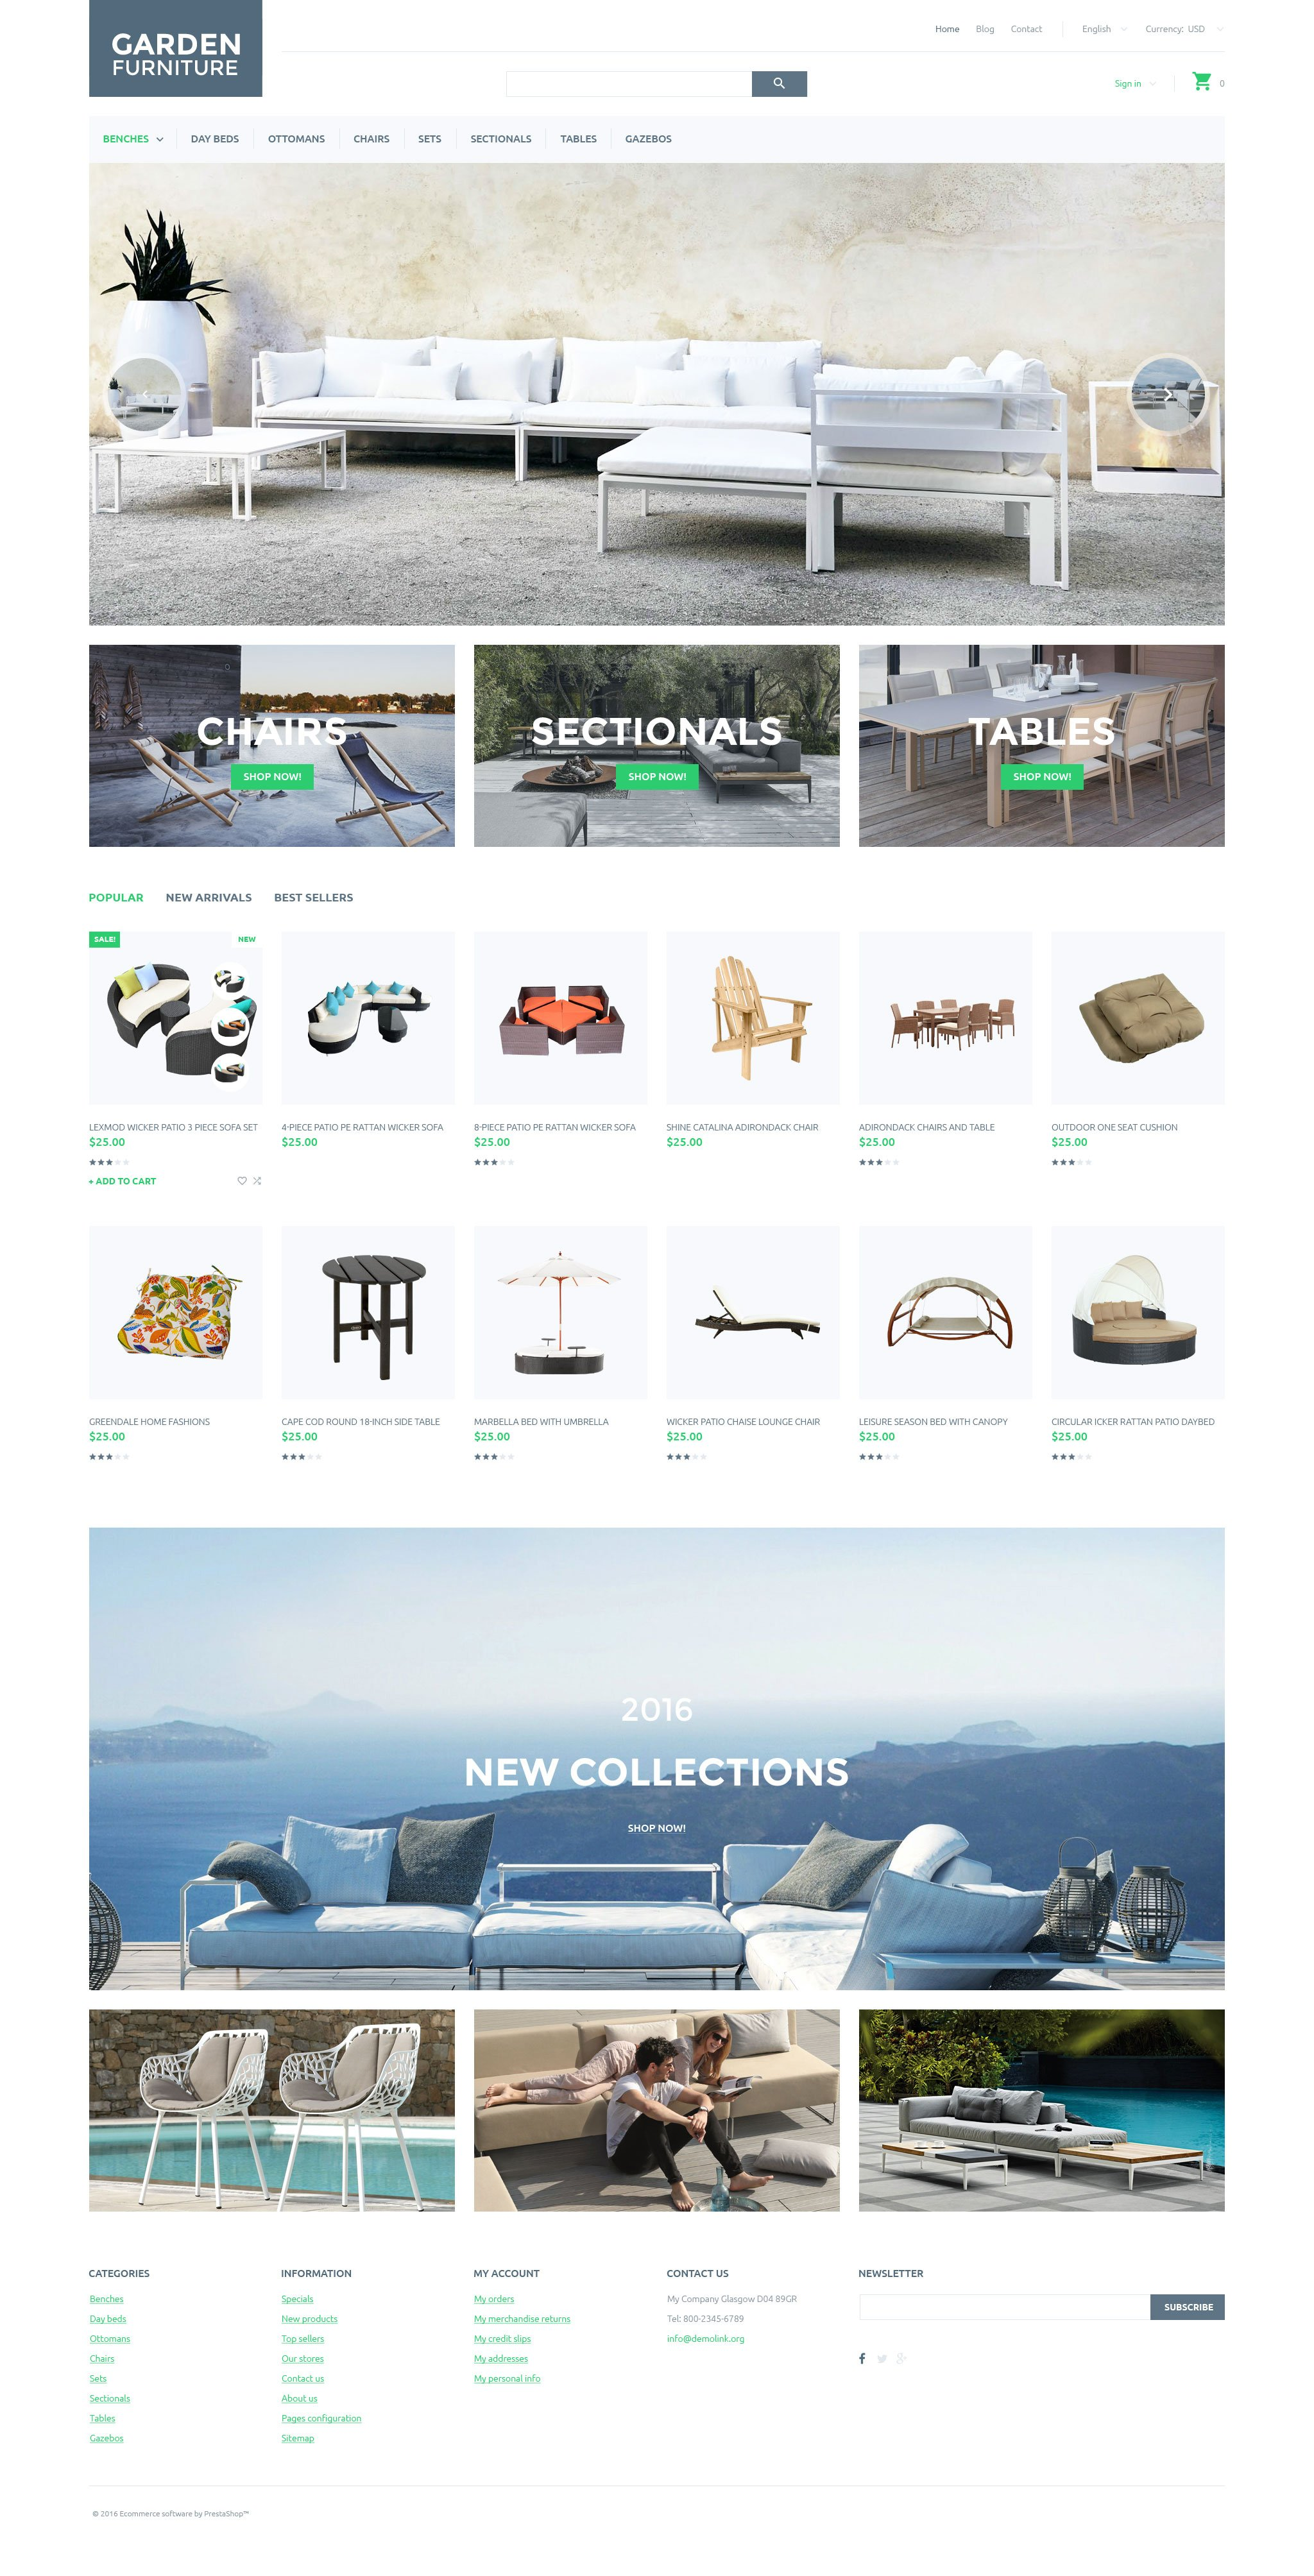 Garden Furniture S garden furniture prestashop theme